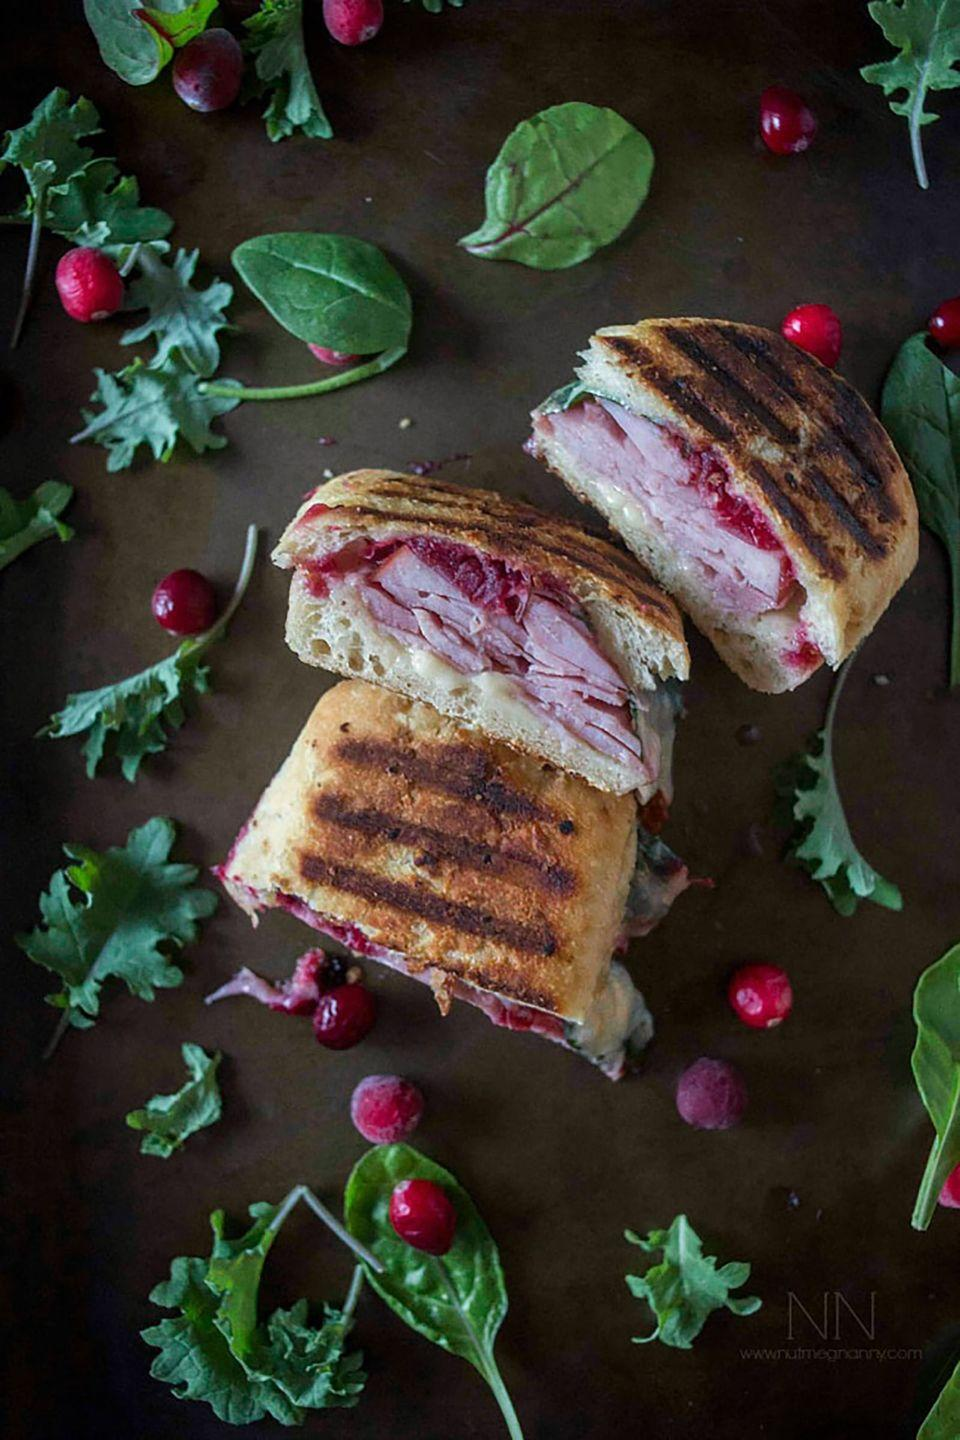 """<p>Christmas ham takes on a new life when paired with cranberries in this toasted, cheesy sandwich.</p><p><strong>Get the recipe at <a href=""""https://www.nutmegnanny.com/ham-cheddar-cranberry-melt/"""" rel=""""nofollow noopener"""" target=""""_blank"""" data-ylk=""""slk:Nutmeg Nanny"""" class=""""link rapid-noclick-resp"""">Nutmeg Nanny</a>.</strong><br></p>"""